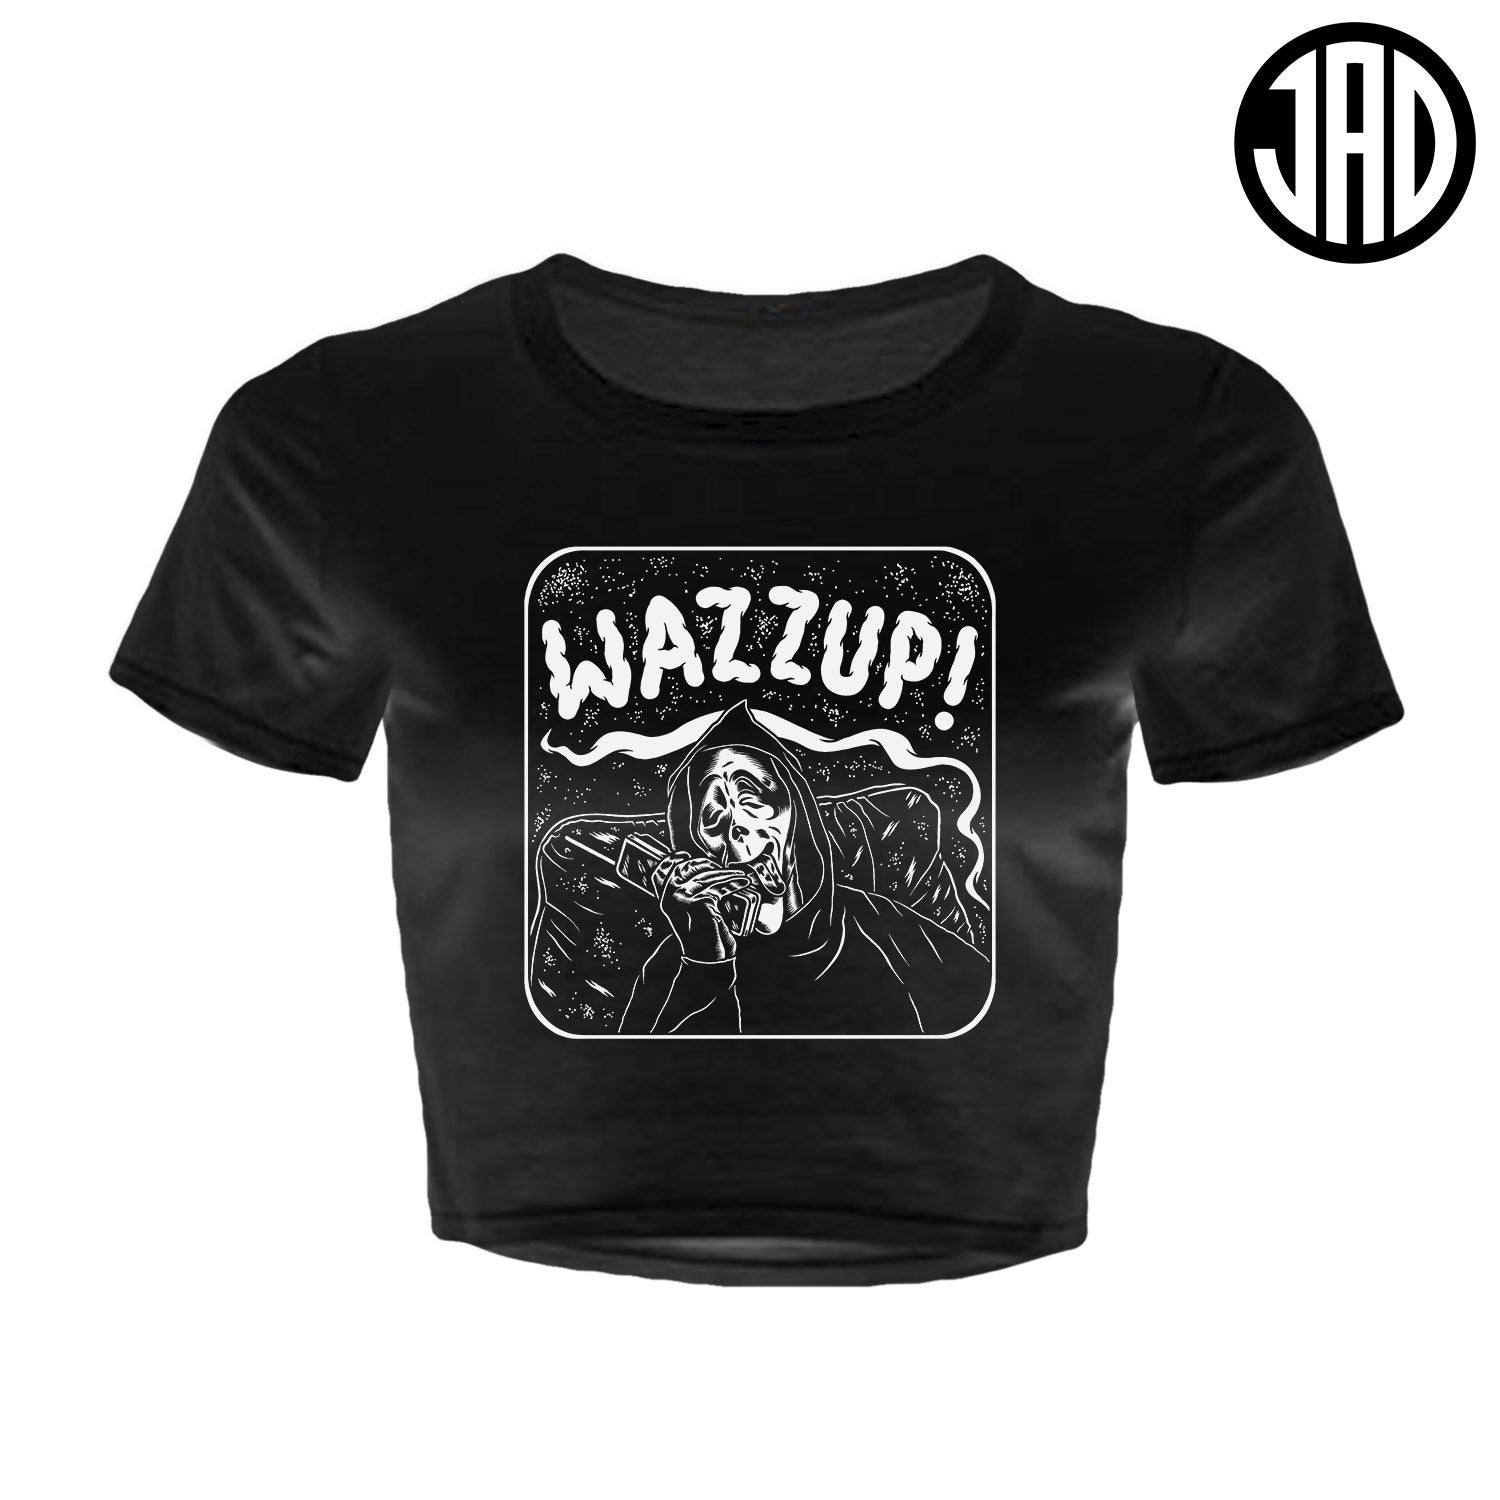 Wazzup - Women's Crop Top